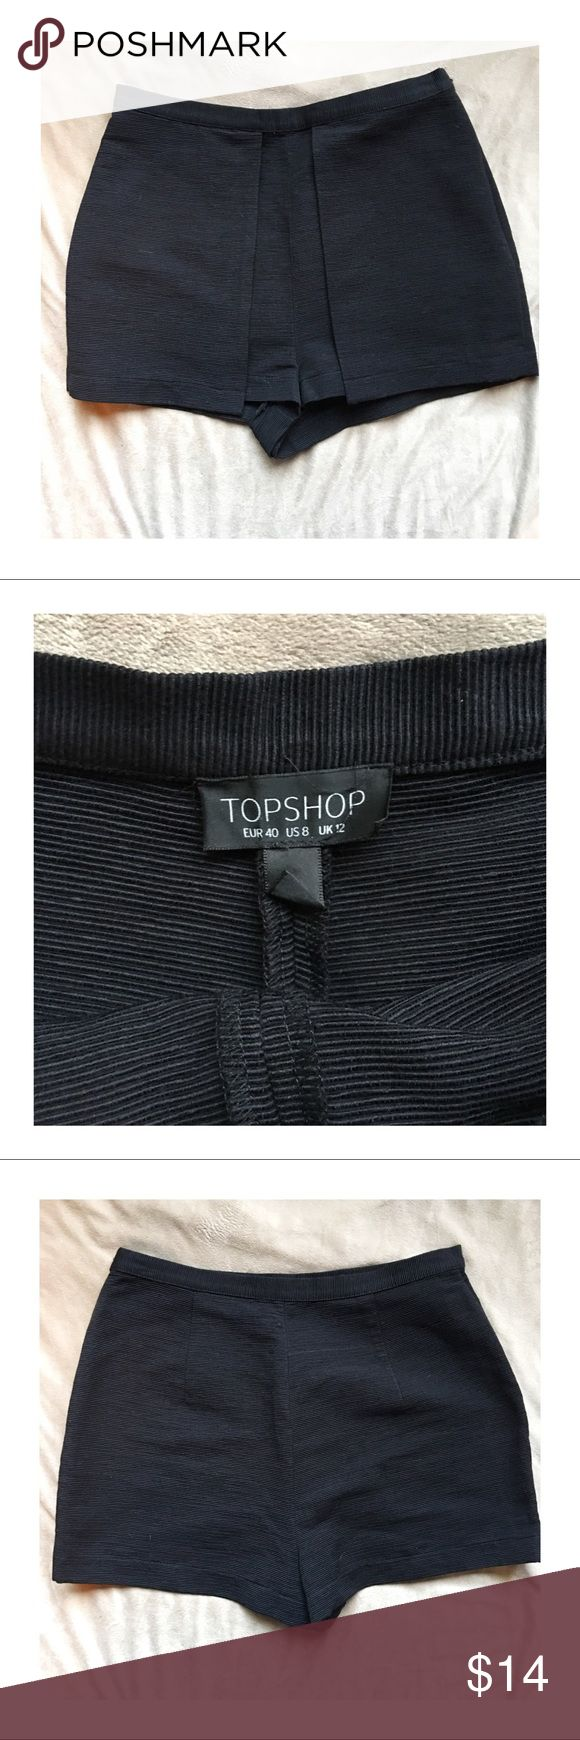 Topshop High Waisted Shorts Topshop high waisted black shorts. Has extra material hanging down on the sides of the front. Very Insta-Chic look! No stains or tears! Topshop Shorts